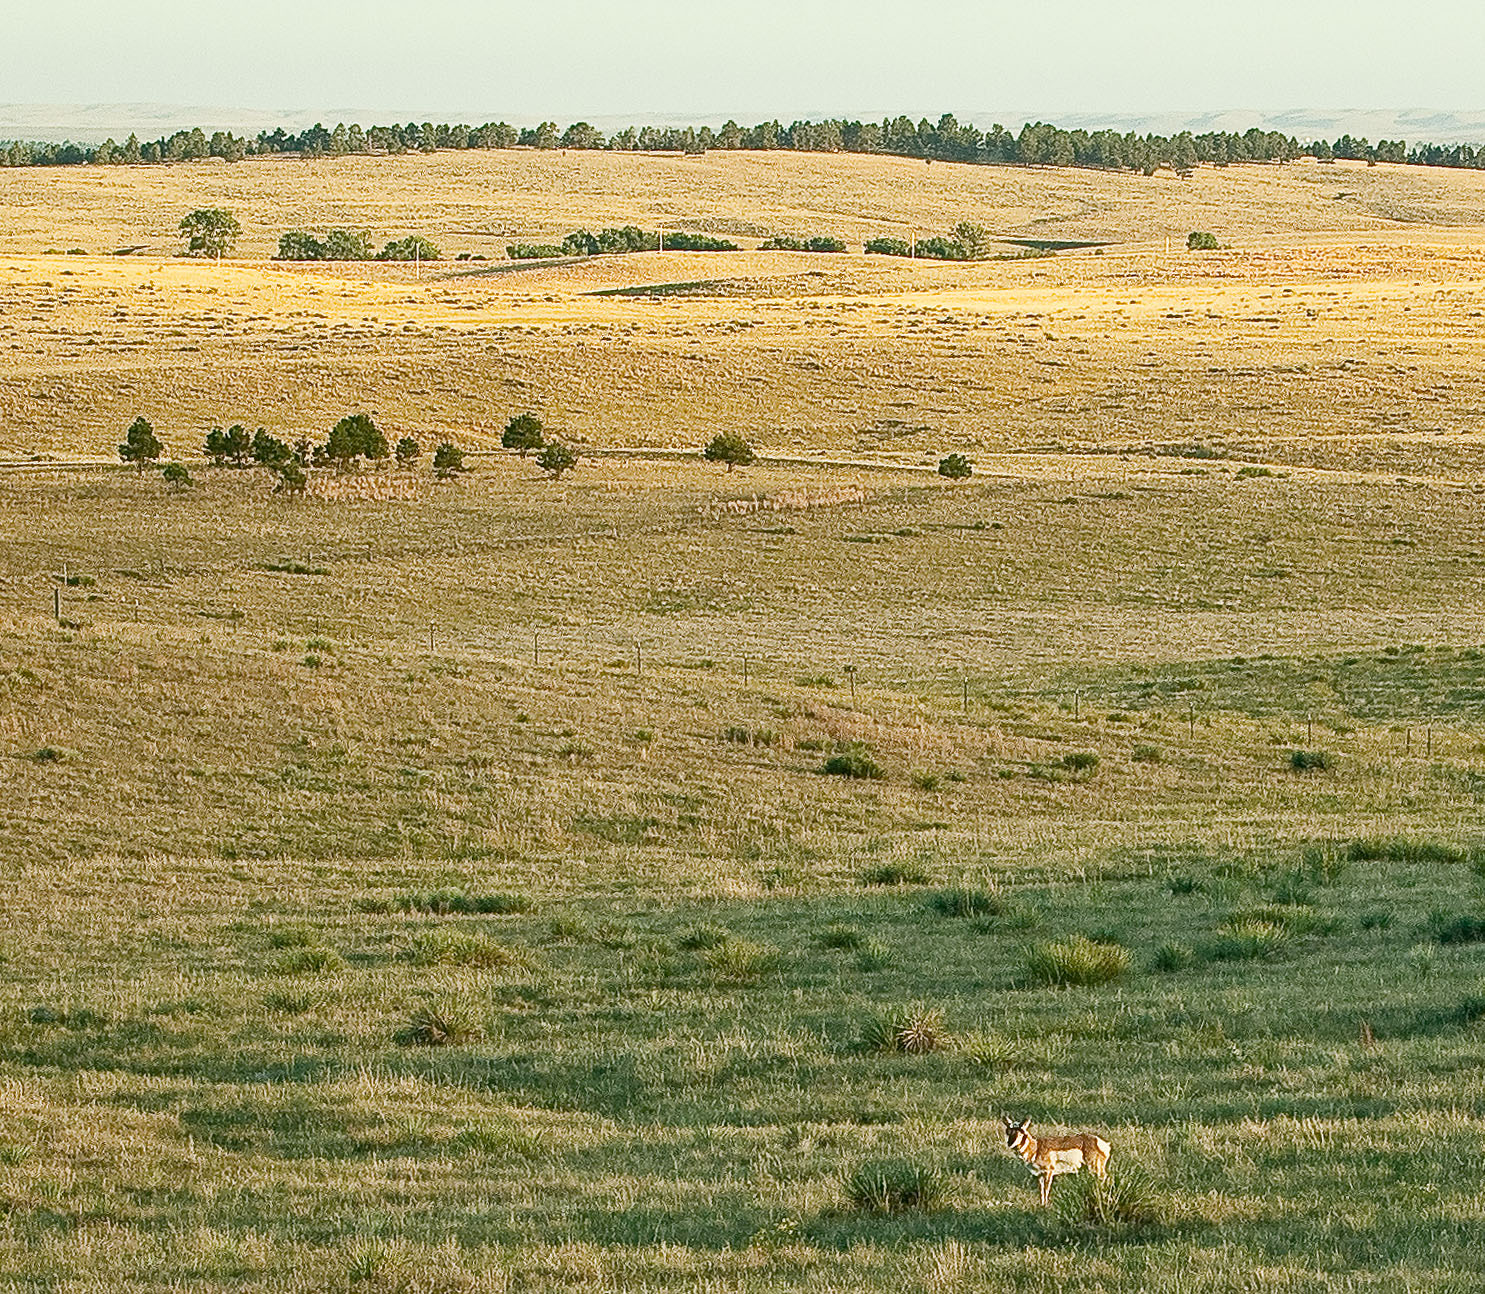 pronghorn this evening